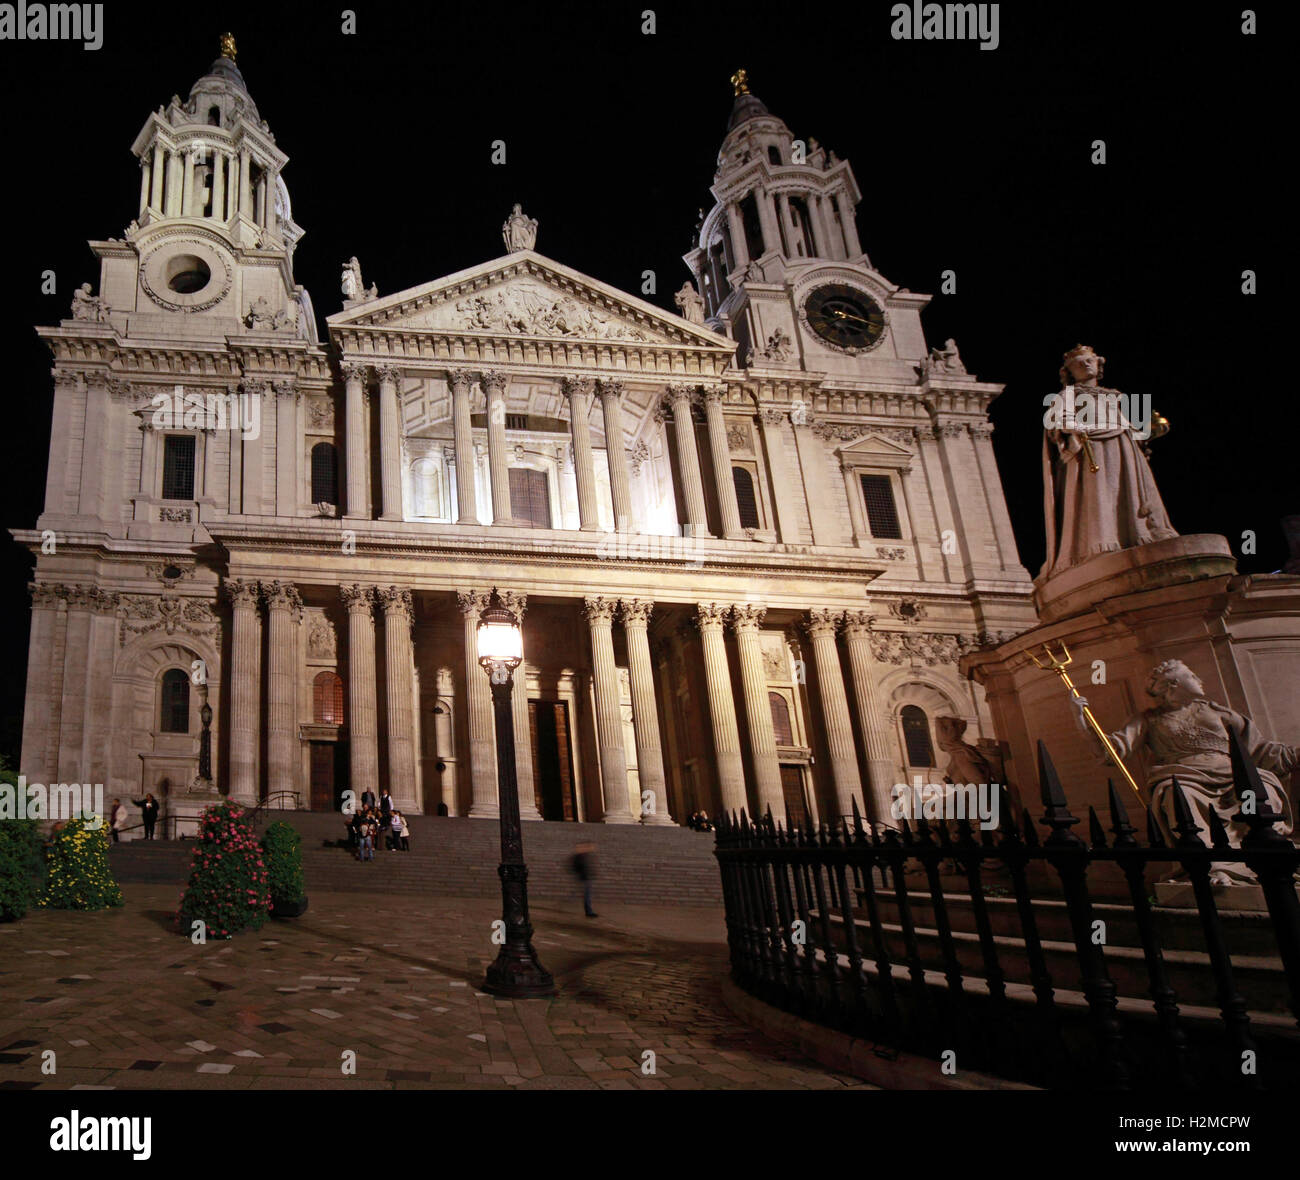 night,long,exposure,longexposure,Christianity,Religion,religious,building,great,fire,of,Christopher,Wren,wide,angle,wideangle,tourist,tourism,travel,view,pilgrimage,famous,heritage,historic,landmark,landmarks,building,citadel,capital,cities,city,St Pauls,City of London,St Pauls Cathedral,GoTonySmith,@HotpixUK,Tony,Smith,different,unique,famous,visitor,landmark,Great,Britain,UK,GB,GreatBritain,prayer,war,survivor,WWII,dome,skyline,iconic,city,scape,cityscape,icon,late,night,Buy Pictures of,Buy Images Of,Images of,Stock Images,Tony Smith,Photo of,Famous visitor landmark,Great Britain,War Survivor,Iconic London,Capital City